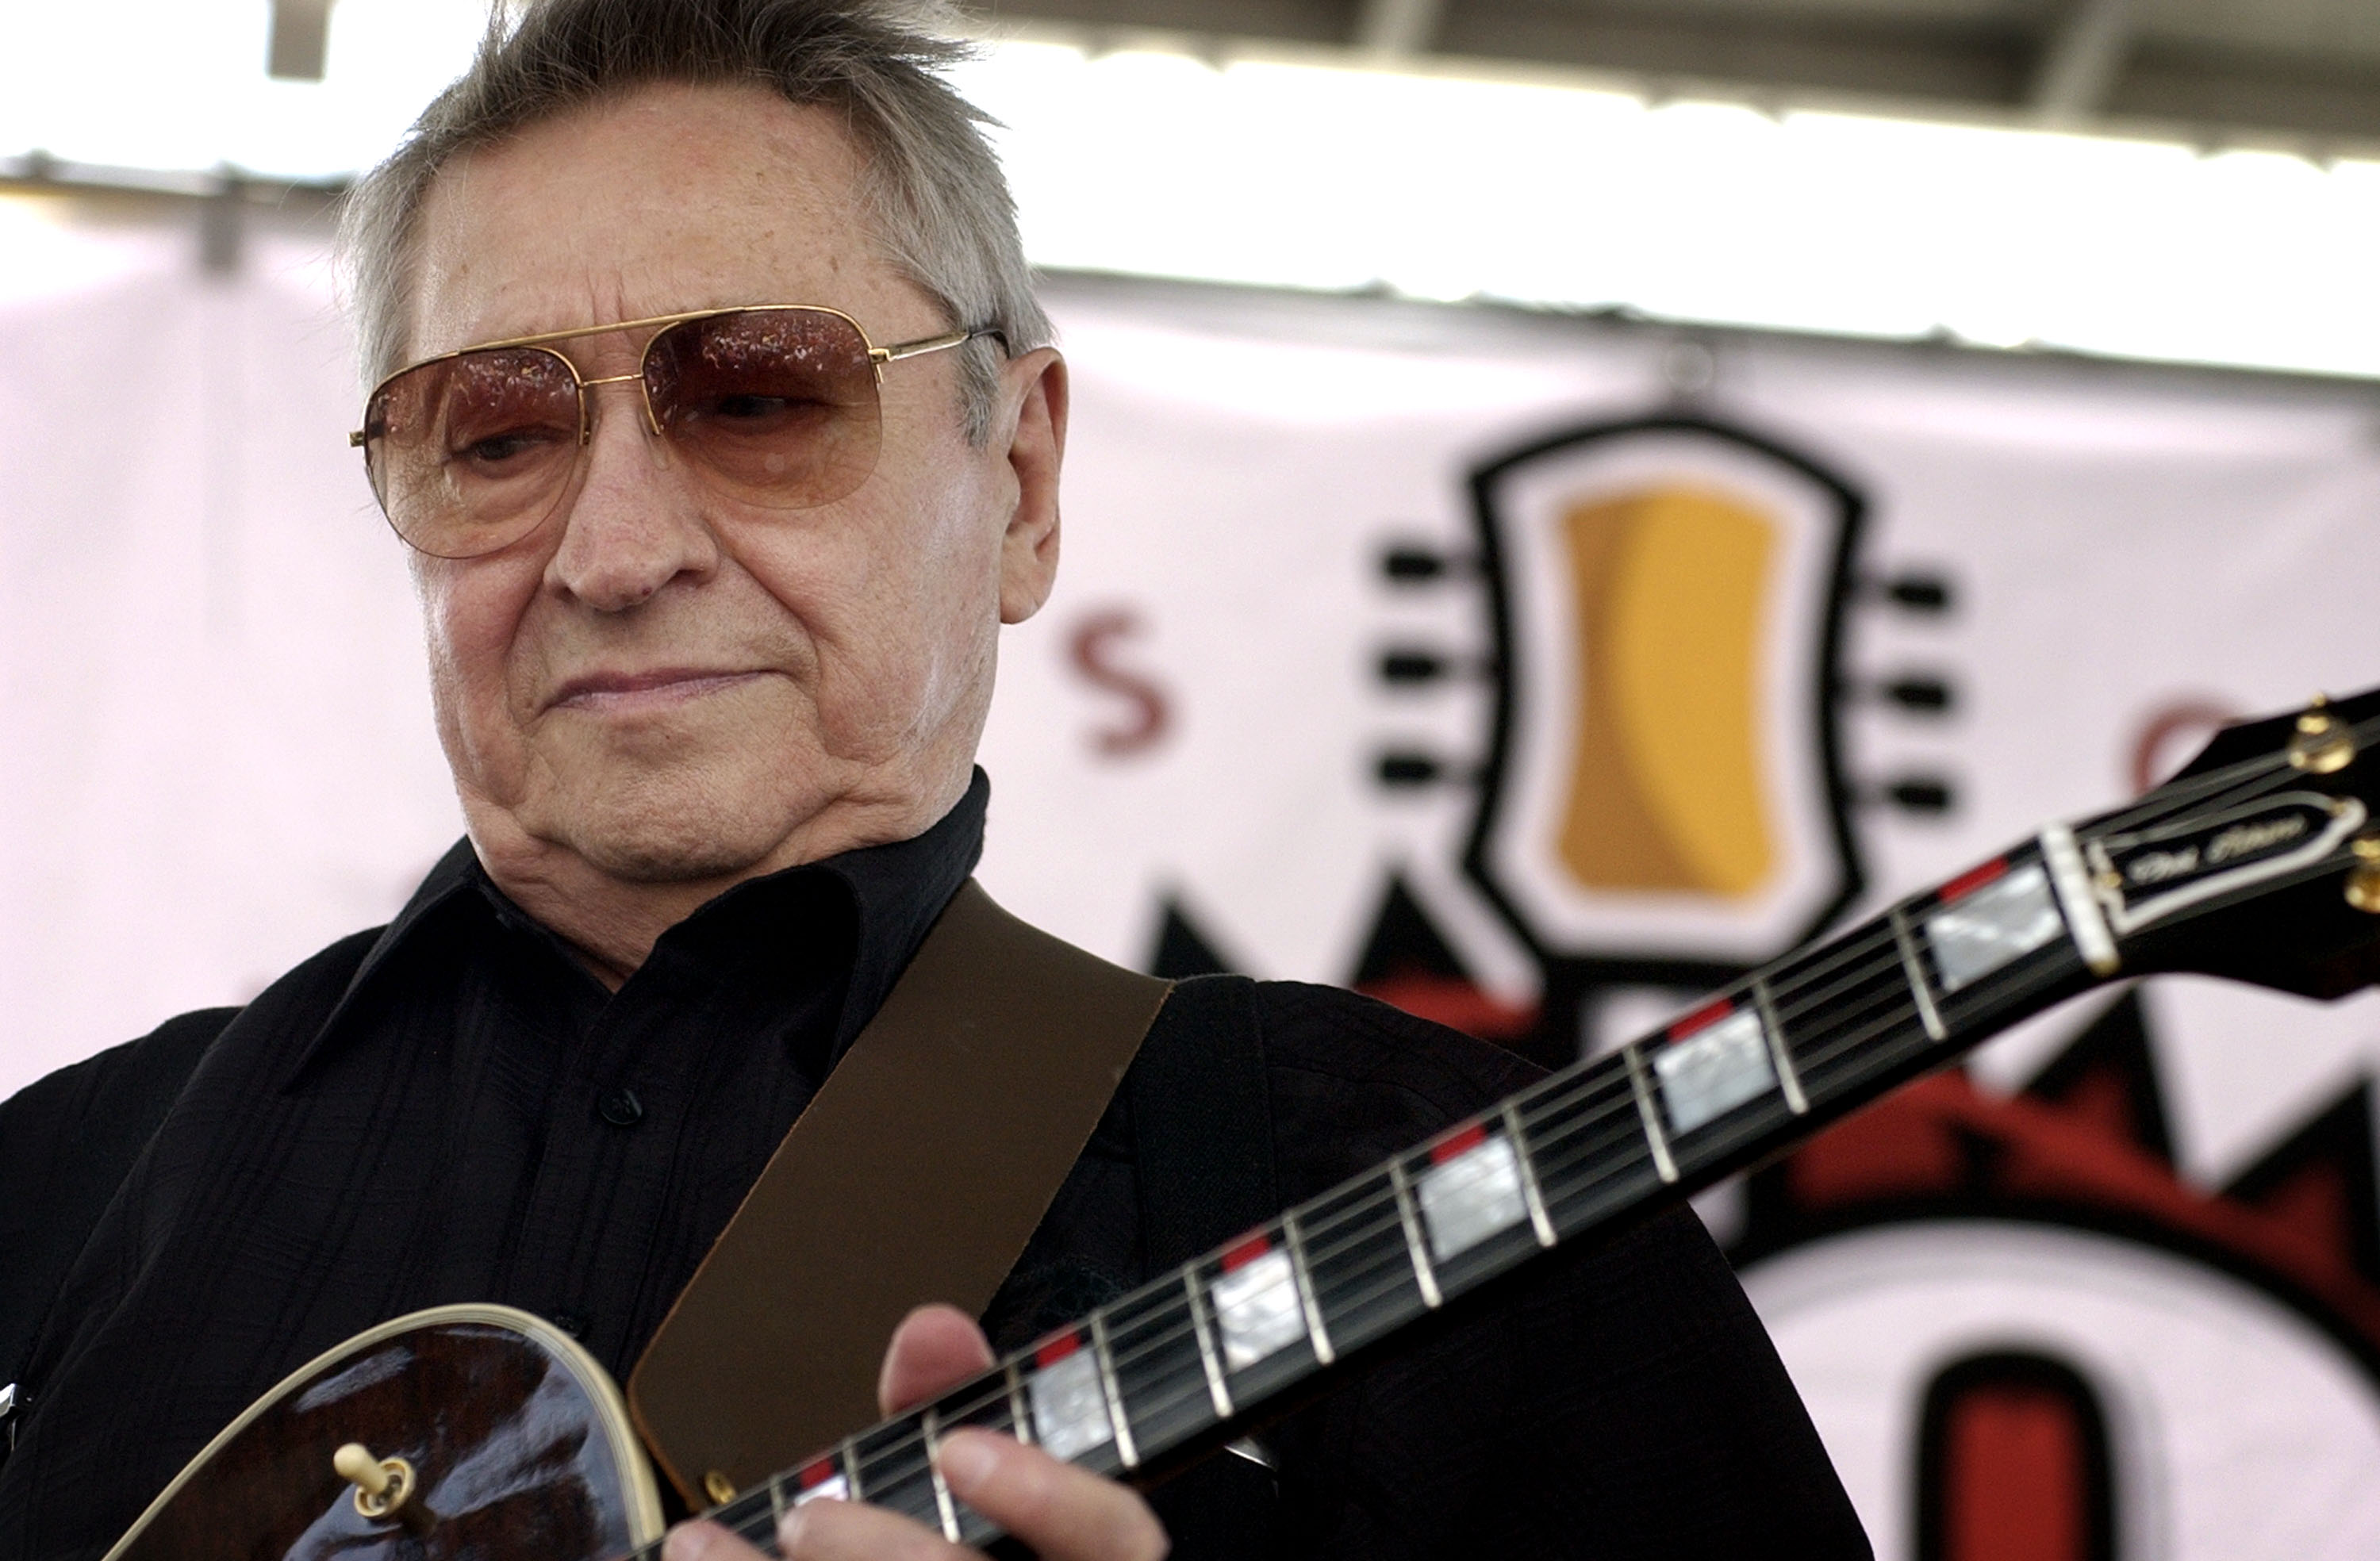 Scotty Moore Dies